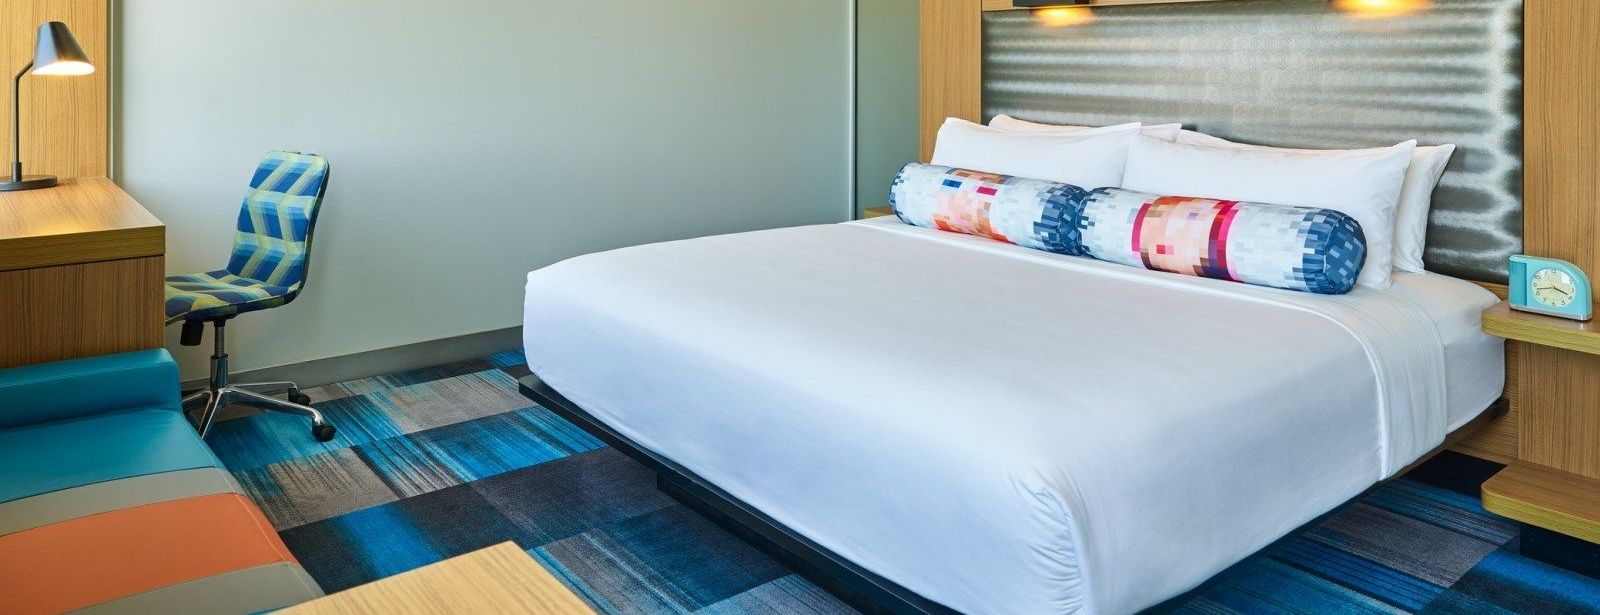 Plano Accommodations - Aloft King Room